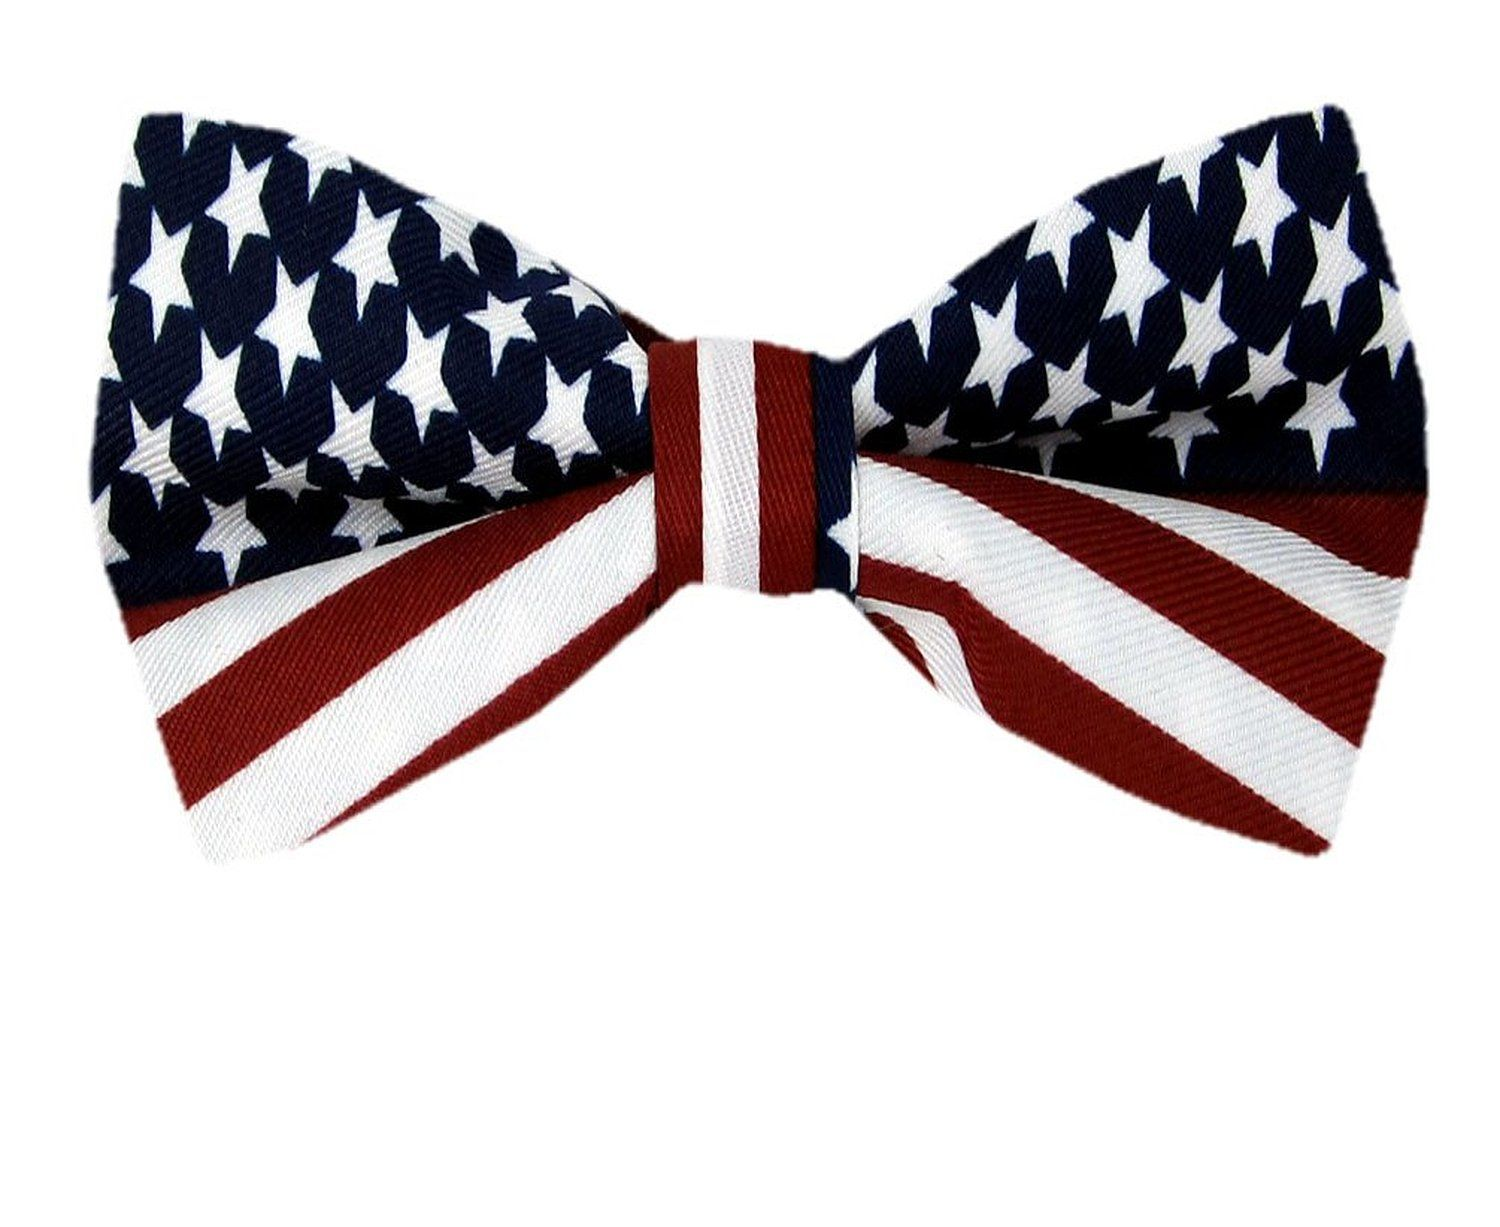 American Flag Men's Bow Tie USA Patriotic BOWTIE at Amazon